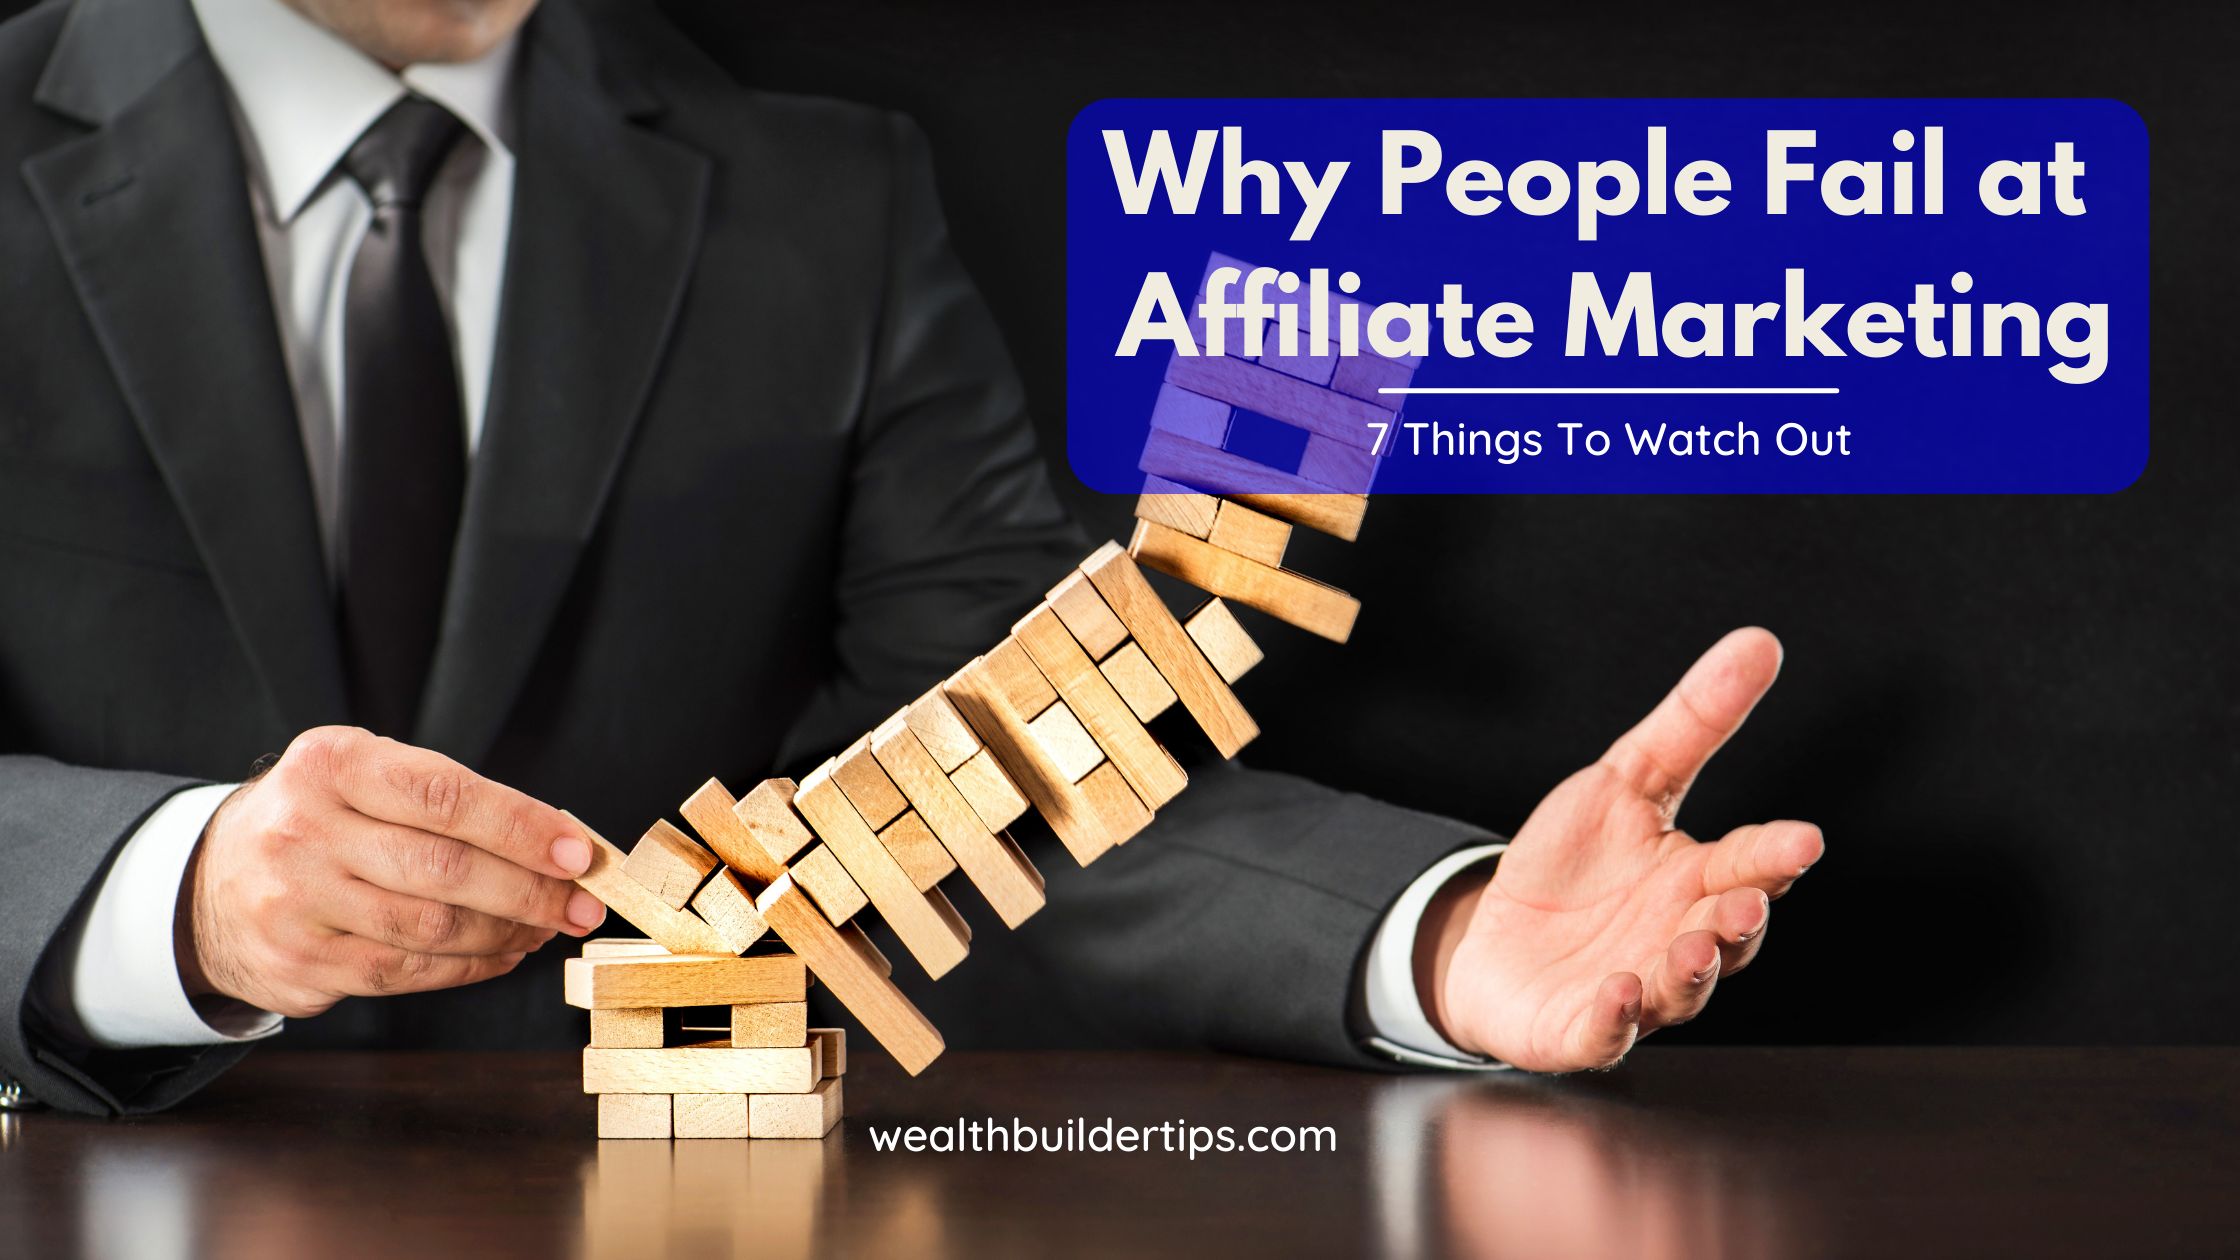 Why People Fail at Affiliate Marketing